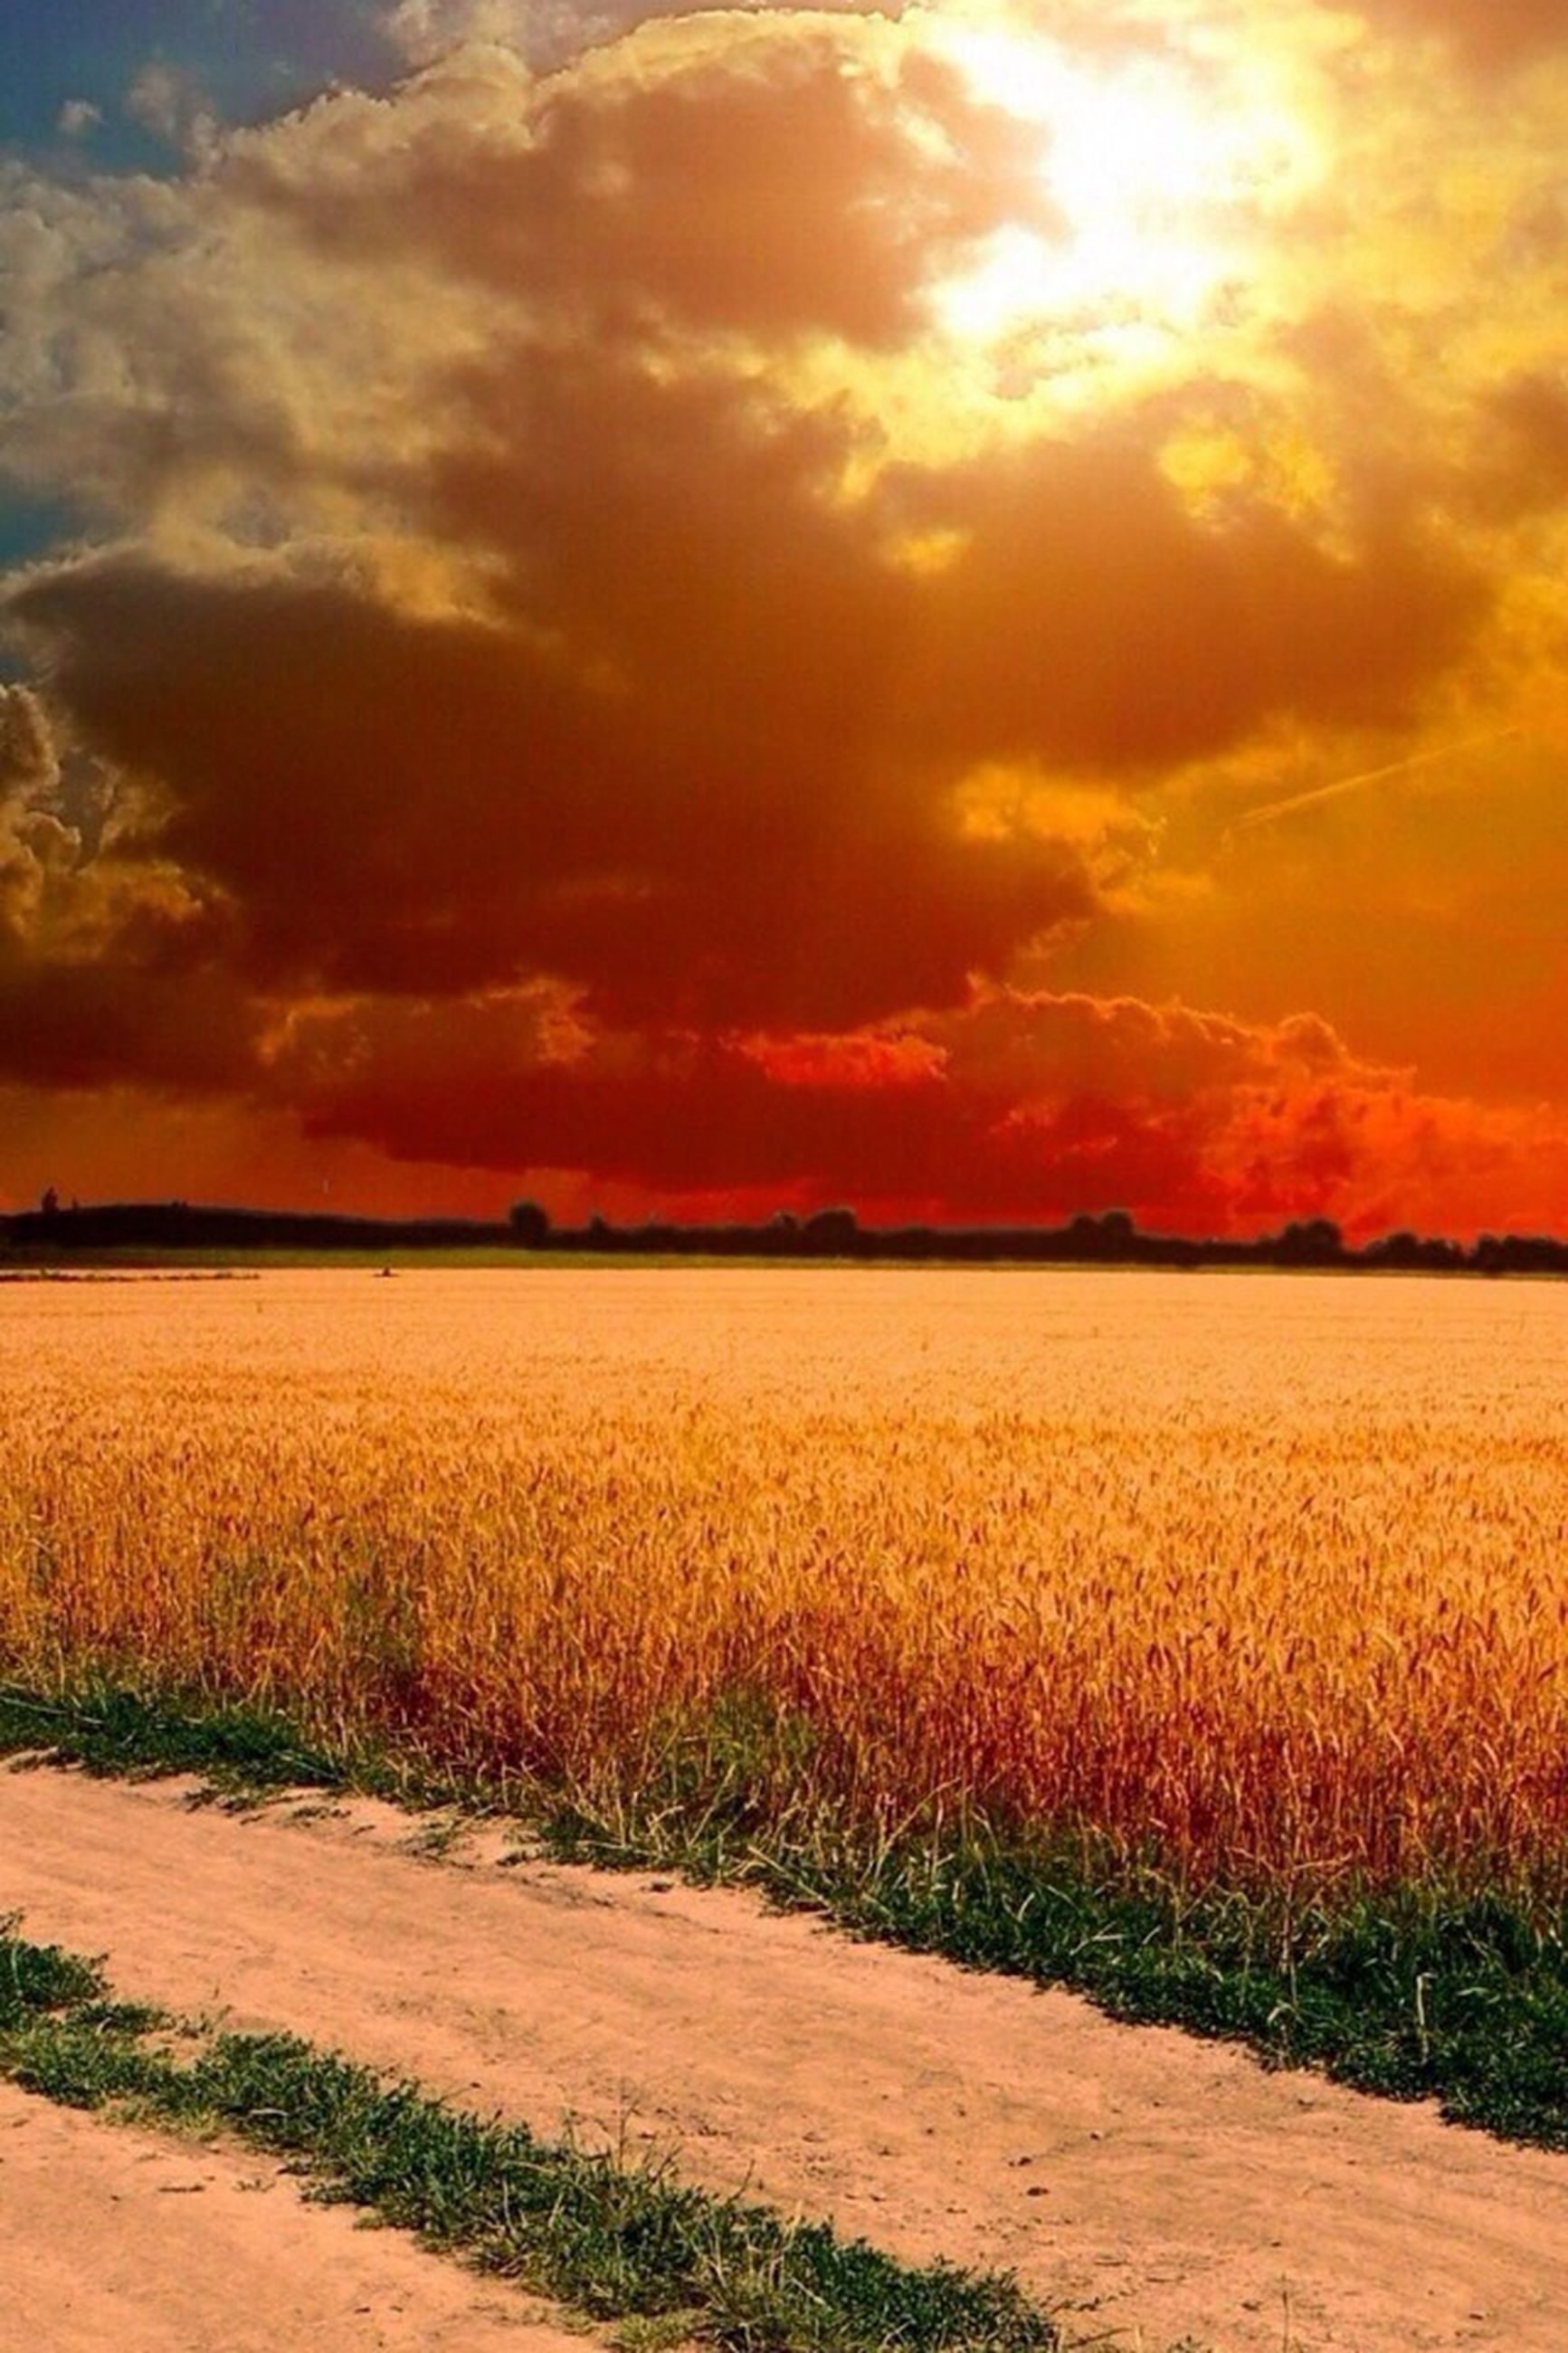 sunset, field, sky, tranquil scene, tranquility, beauty in nature, landscape, scenics, grass, rural scene, agriculture, growth, nature, orange color, cloud - sky, farm, plant, idyllic, cloud, crop